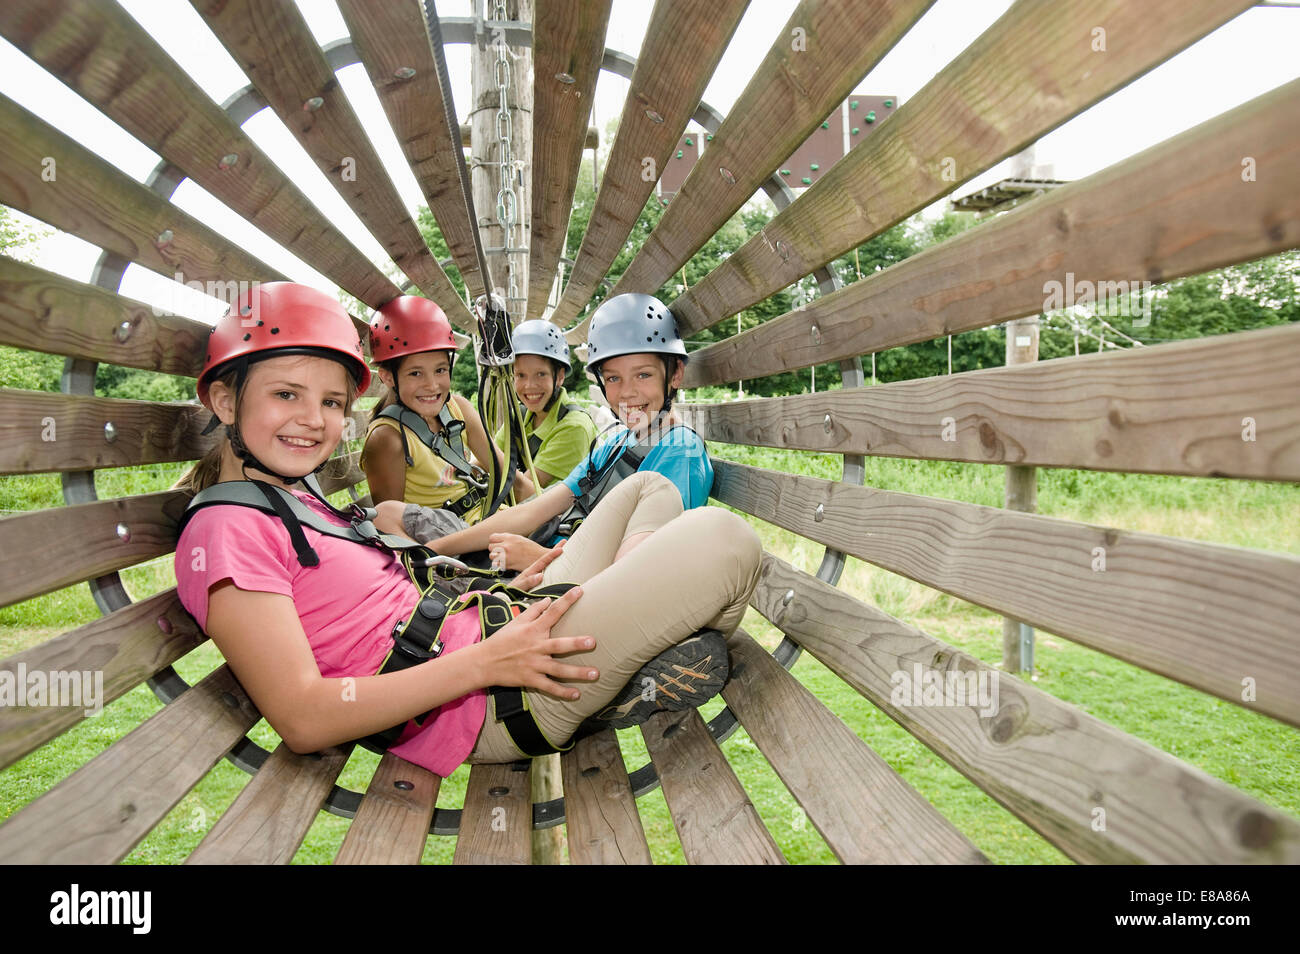 Portrait of girls and boys relaxing, smiling - Stock Image